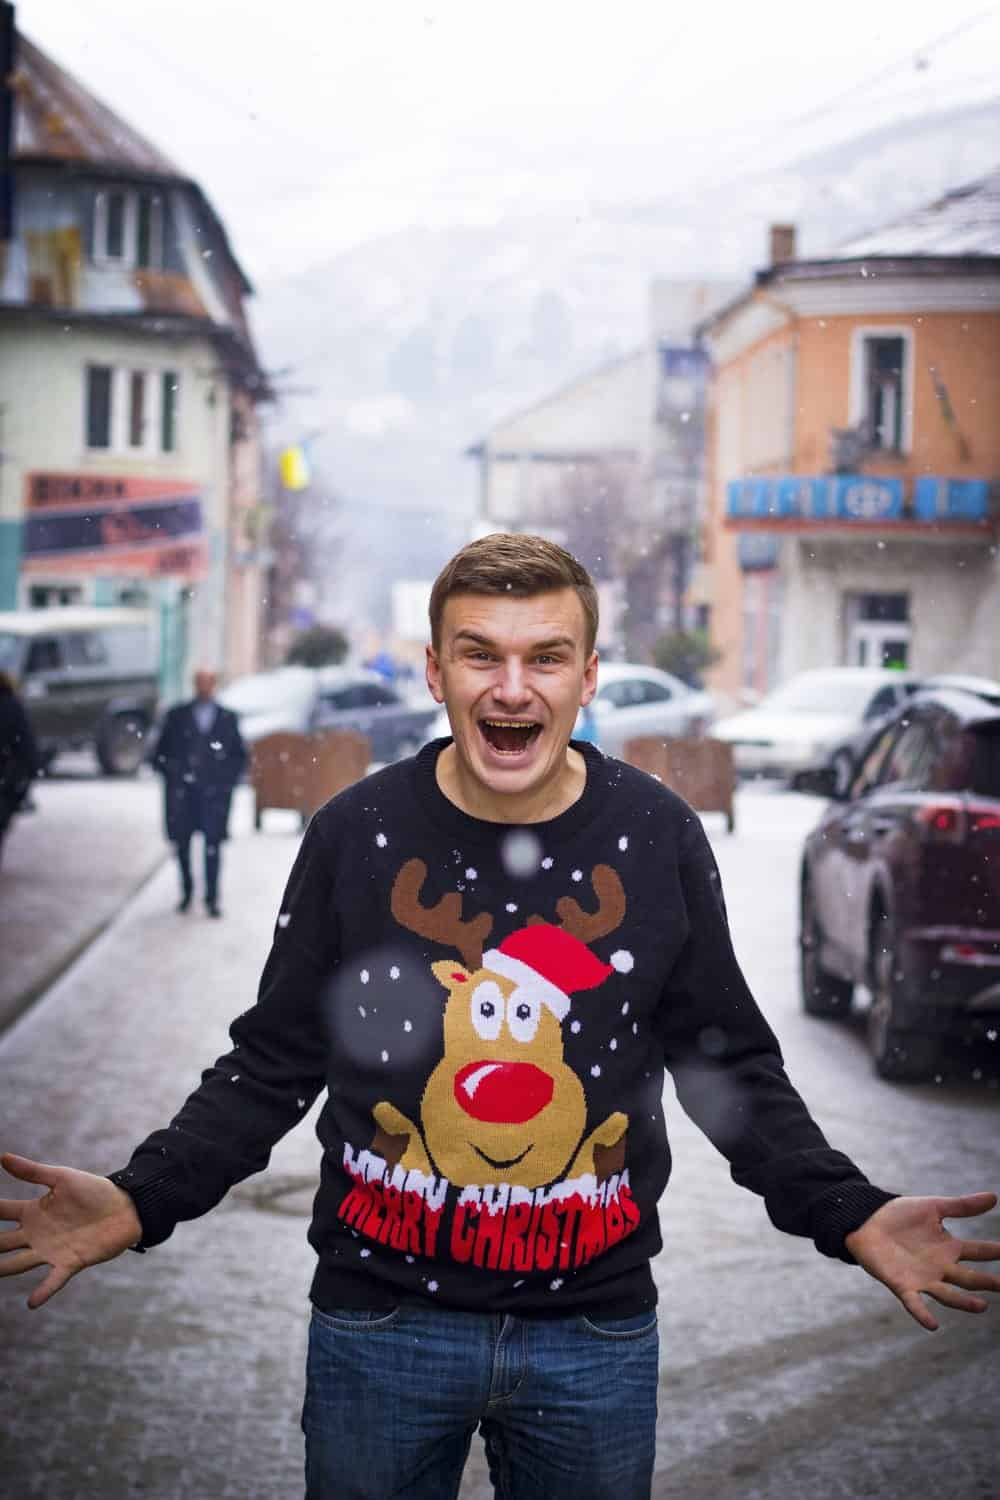 guy with christmas sweater